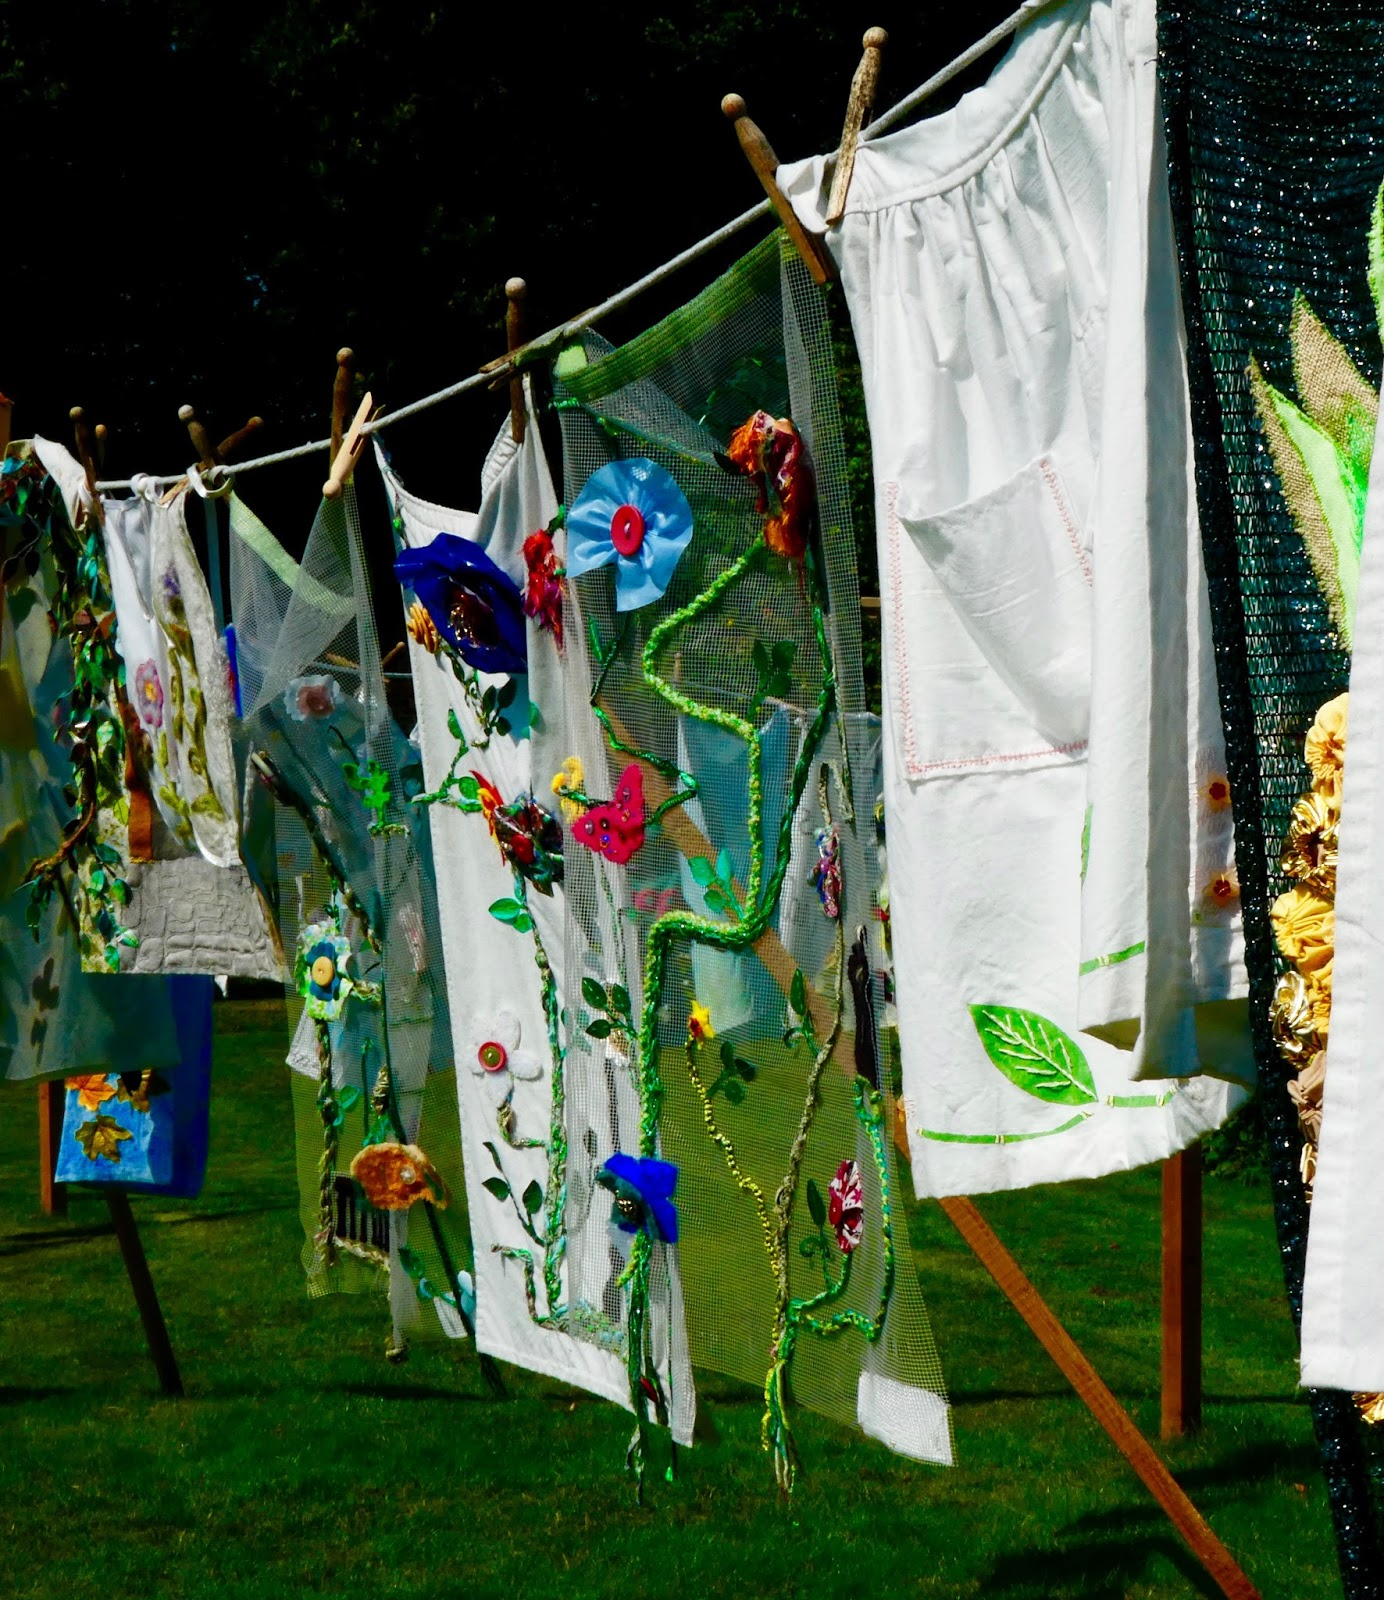 Gibside - A North East National Trust Property that's ideal for Picnics, Adventure Playground fun and beautiful gardens - Walled Garden washing line